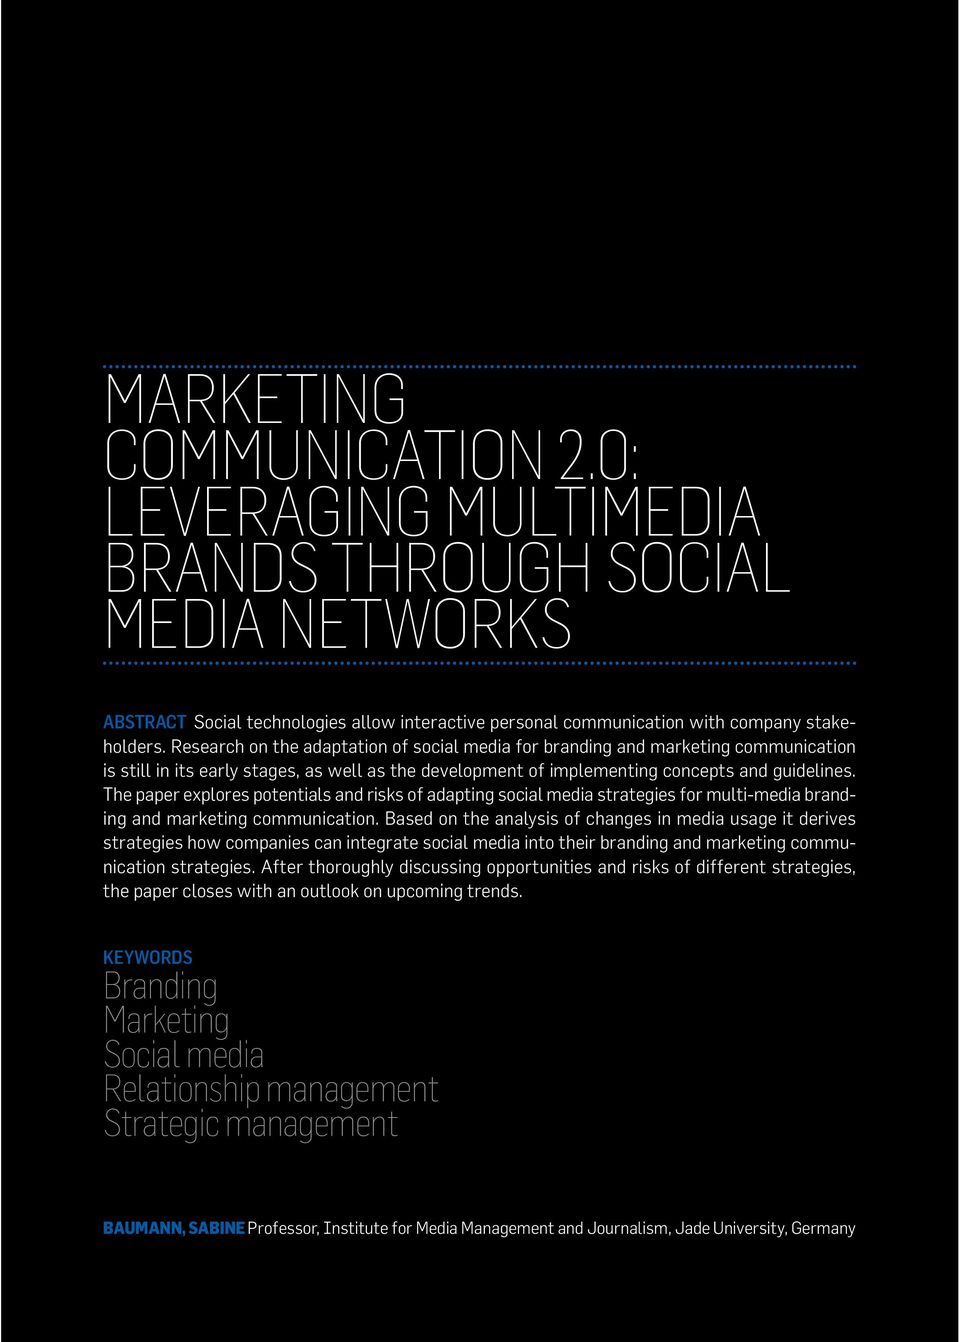 The paper explores potentials and risks of adapting social media strategies for multi-media branding and marketing communication.